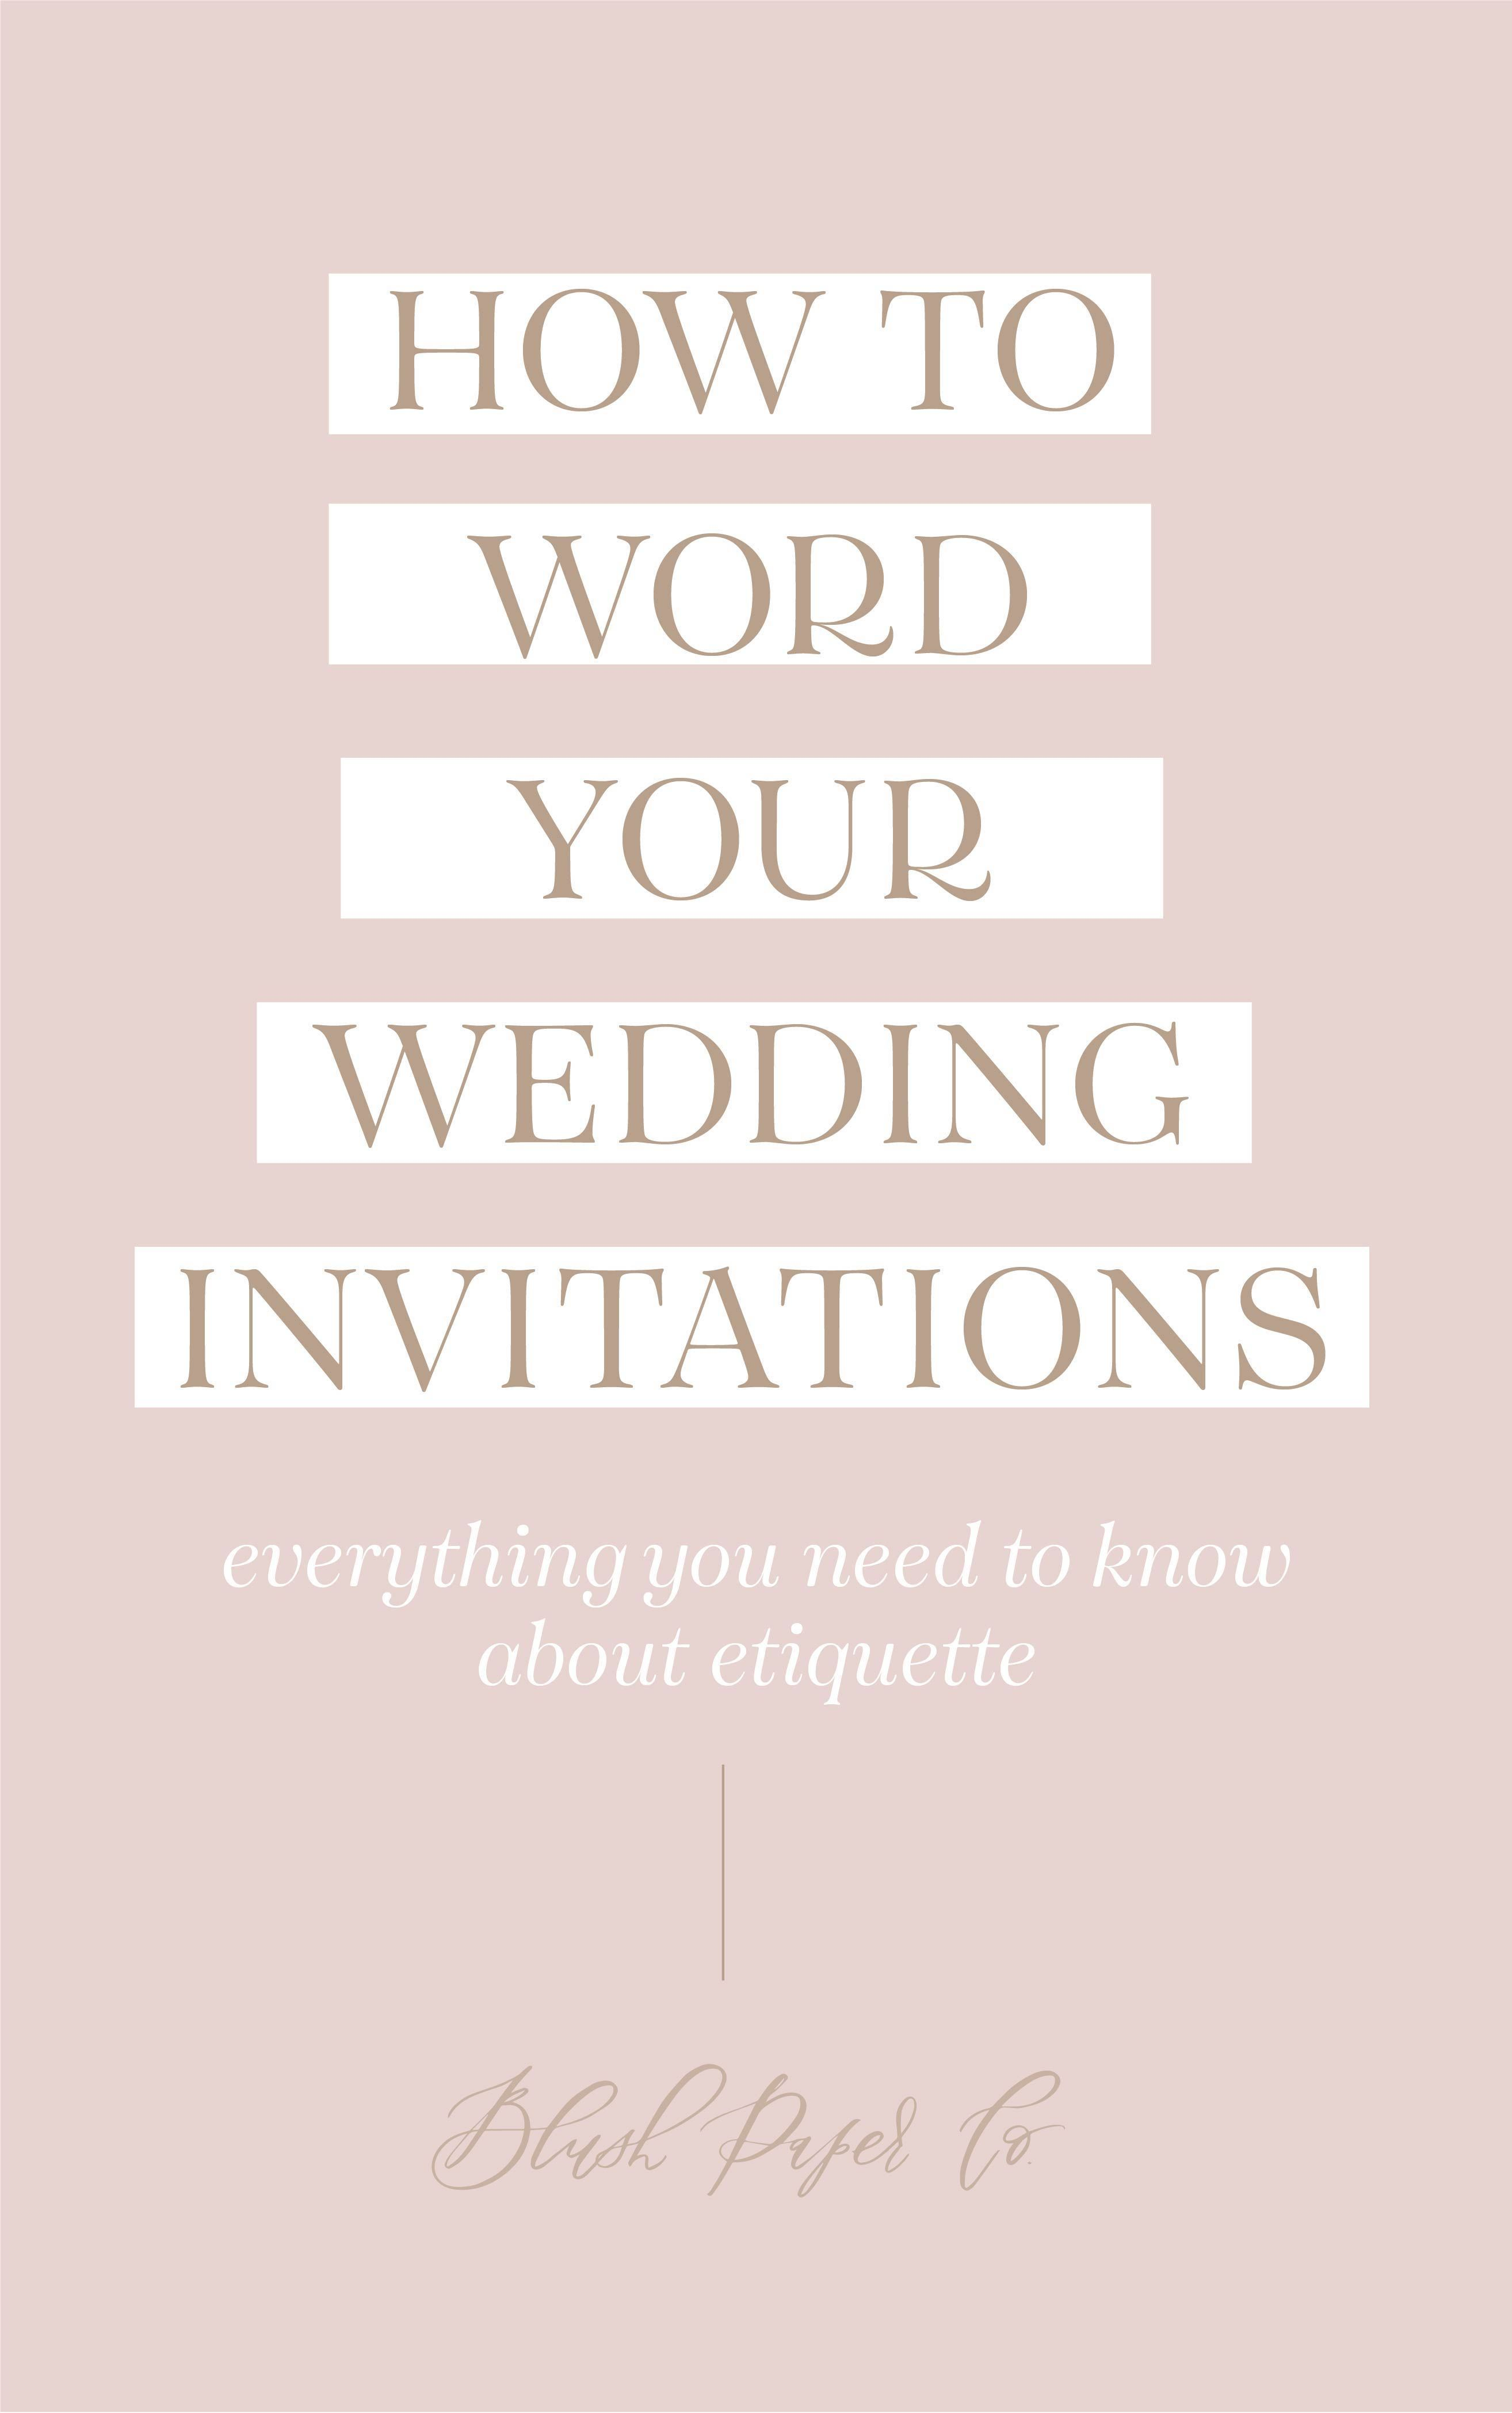 How To Word Wedding Invitations In 2020 Wedding Invitations Light Pink Wedding Invitation Wording Wedding Invitations